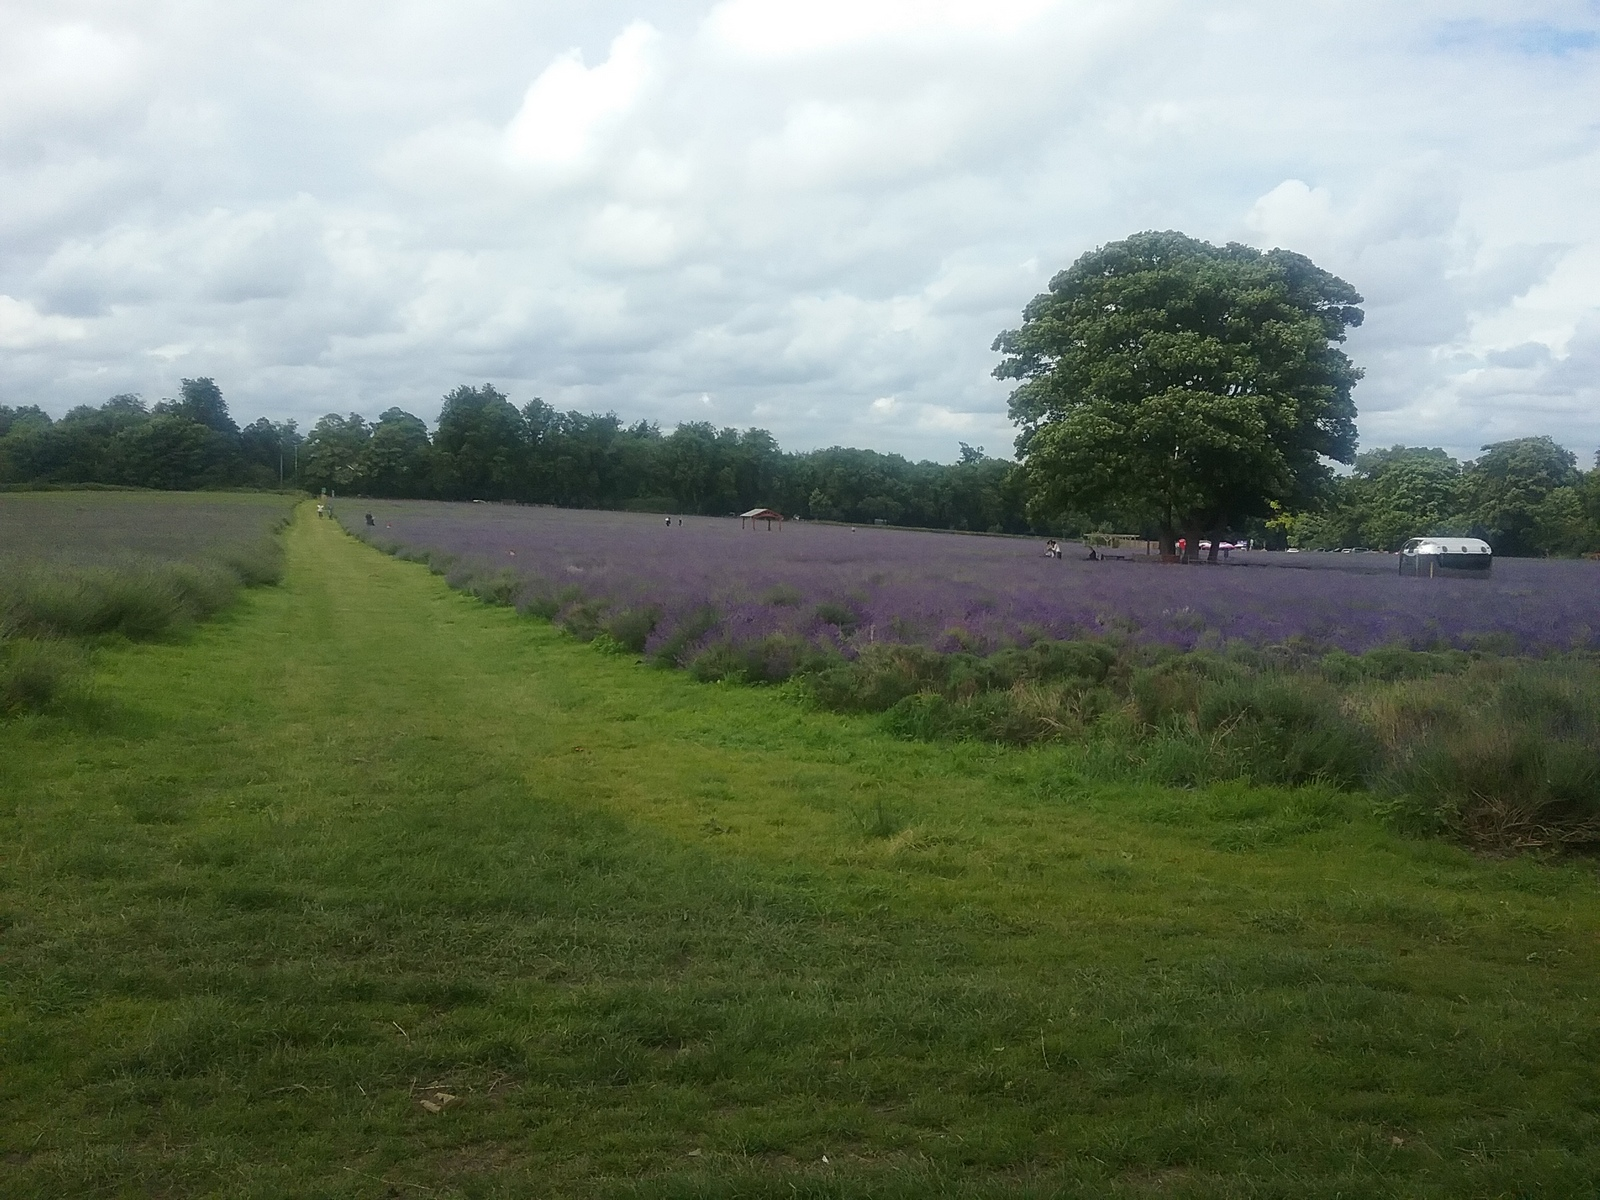 20160630_161602 Public footpath across Mayfield Farm lavender fields